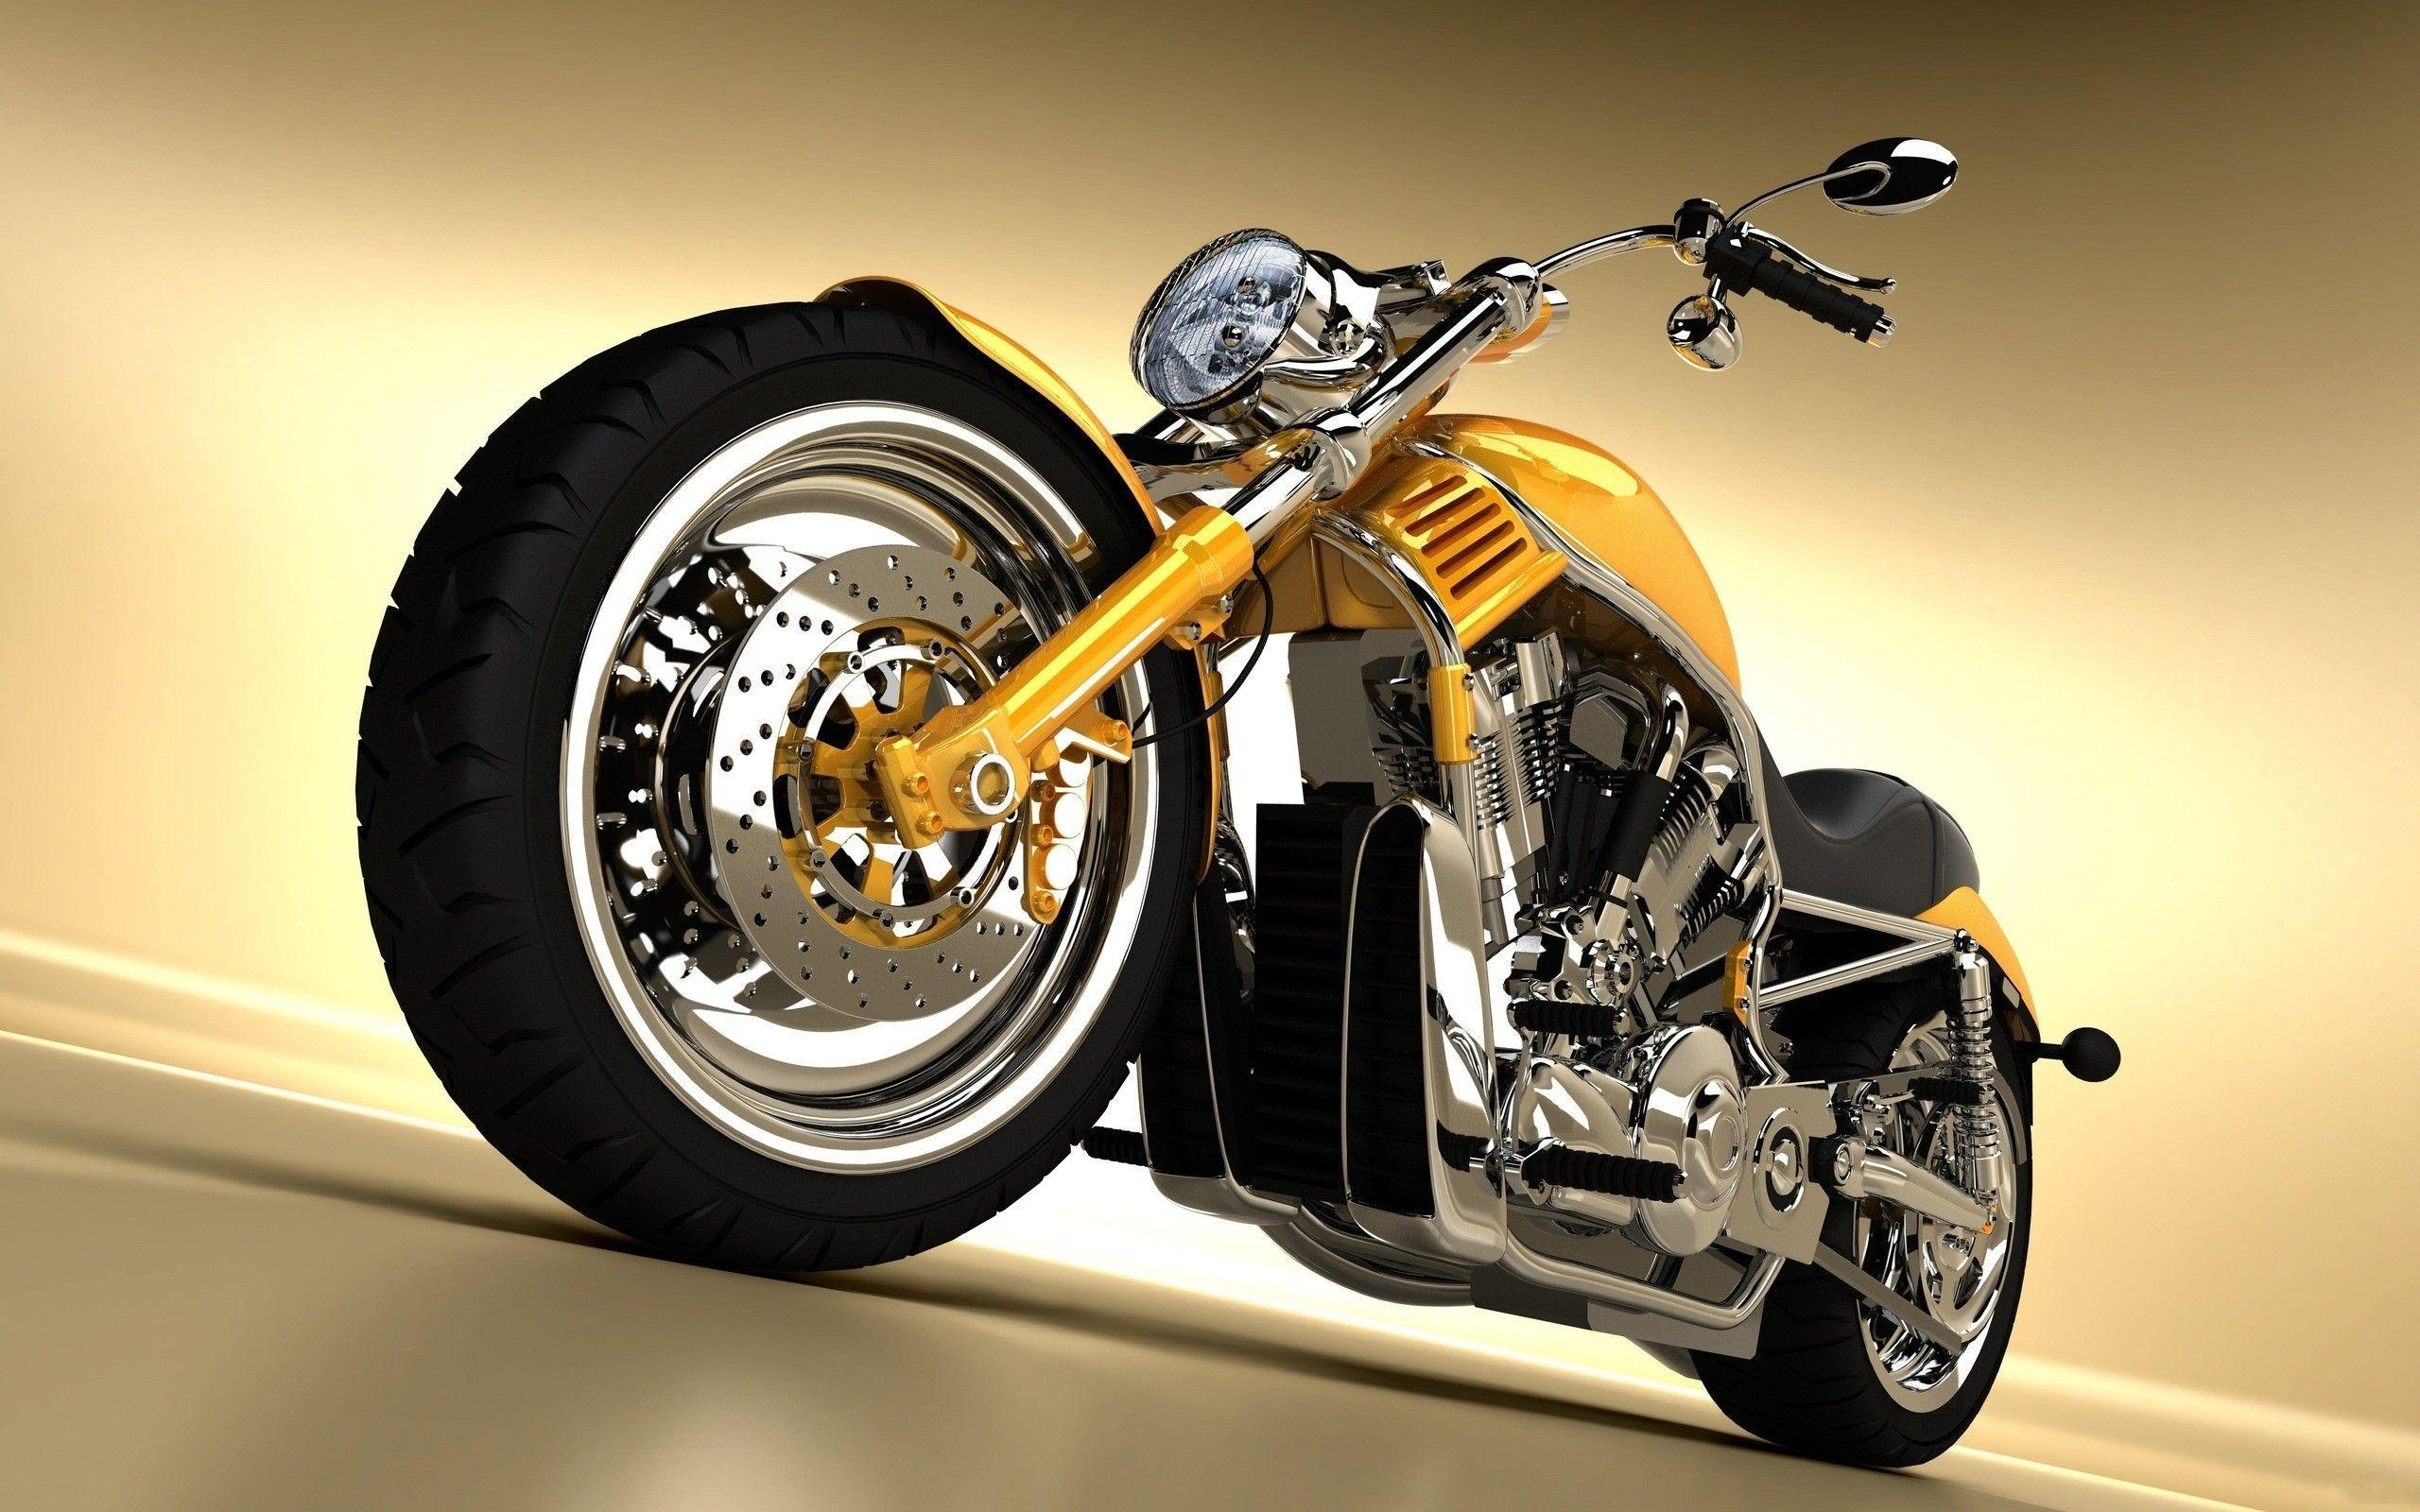 Classic Harley Davidson Motorcycles Hd Pictures 4 HD Wallpapers